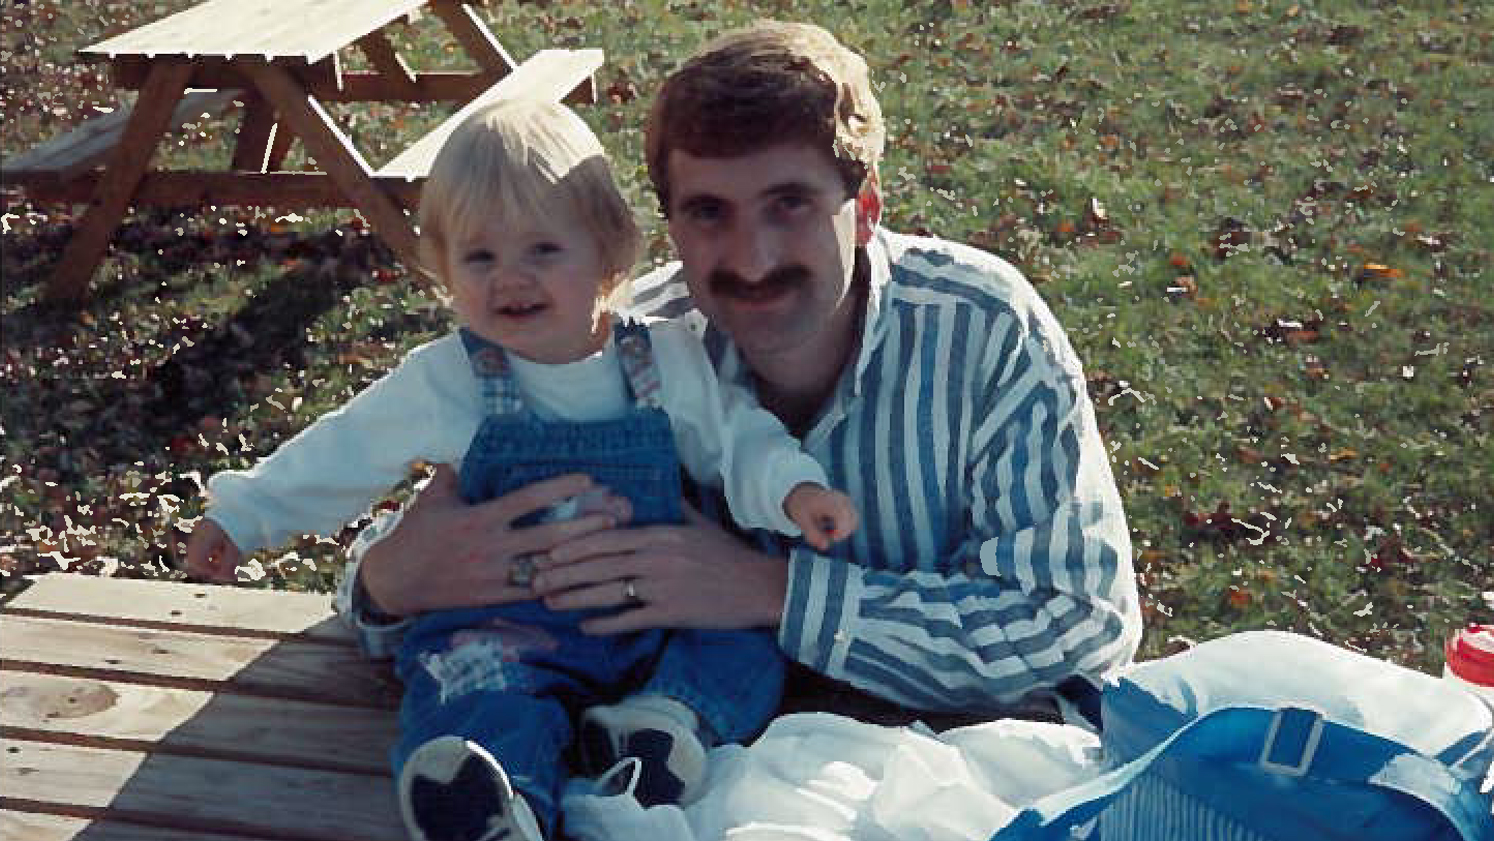 Happy Father's Day to the Man Who Taught Me to Shoot